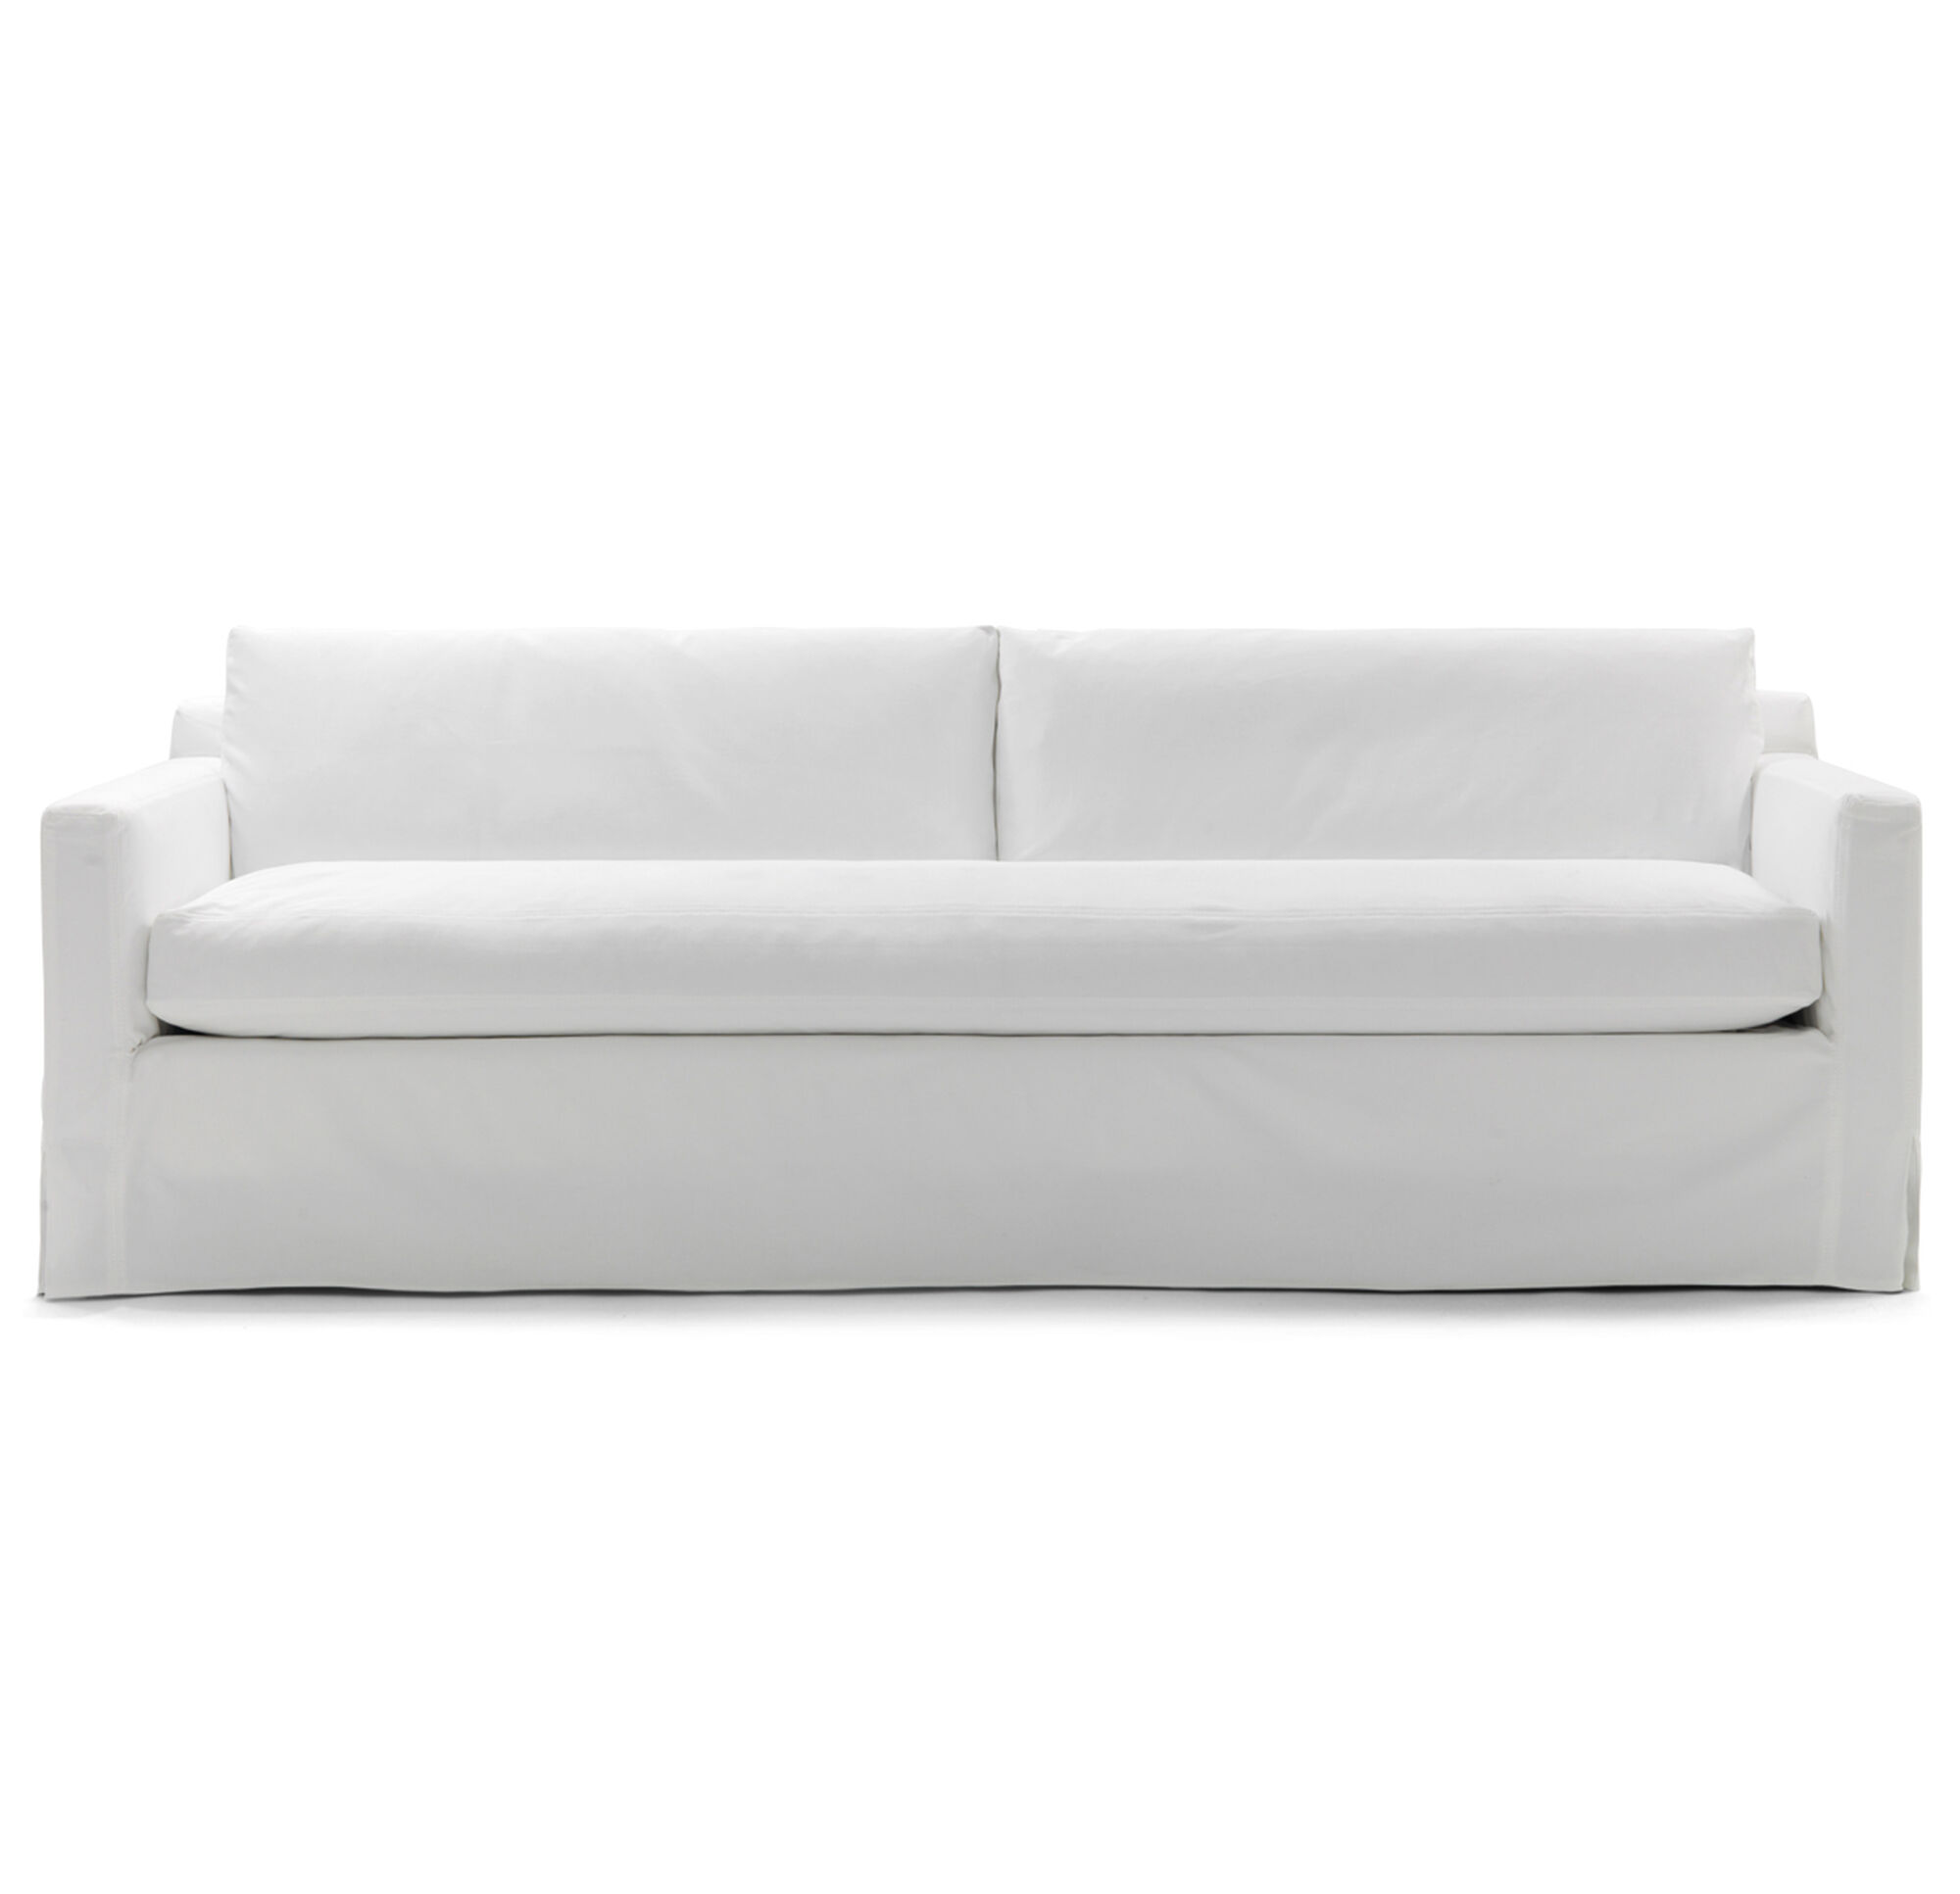 and slipcovered in we of relaxed chose looks burst living white a this casual learn farmhouse room charming beautiful why slipcover sofa